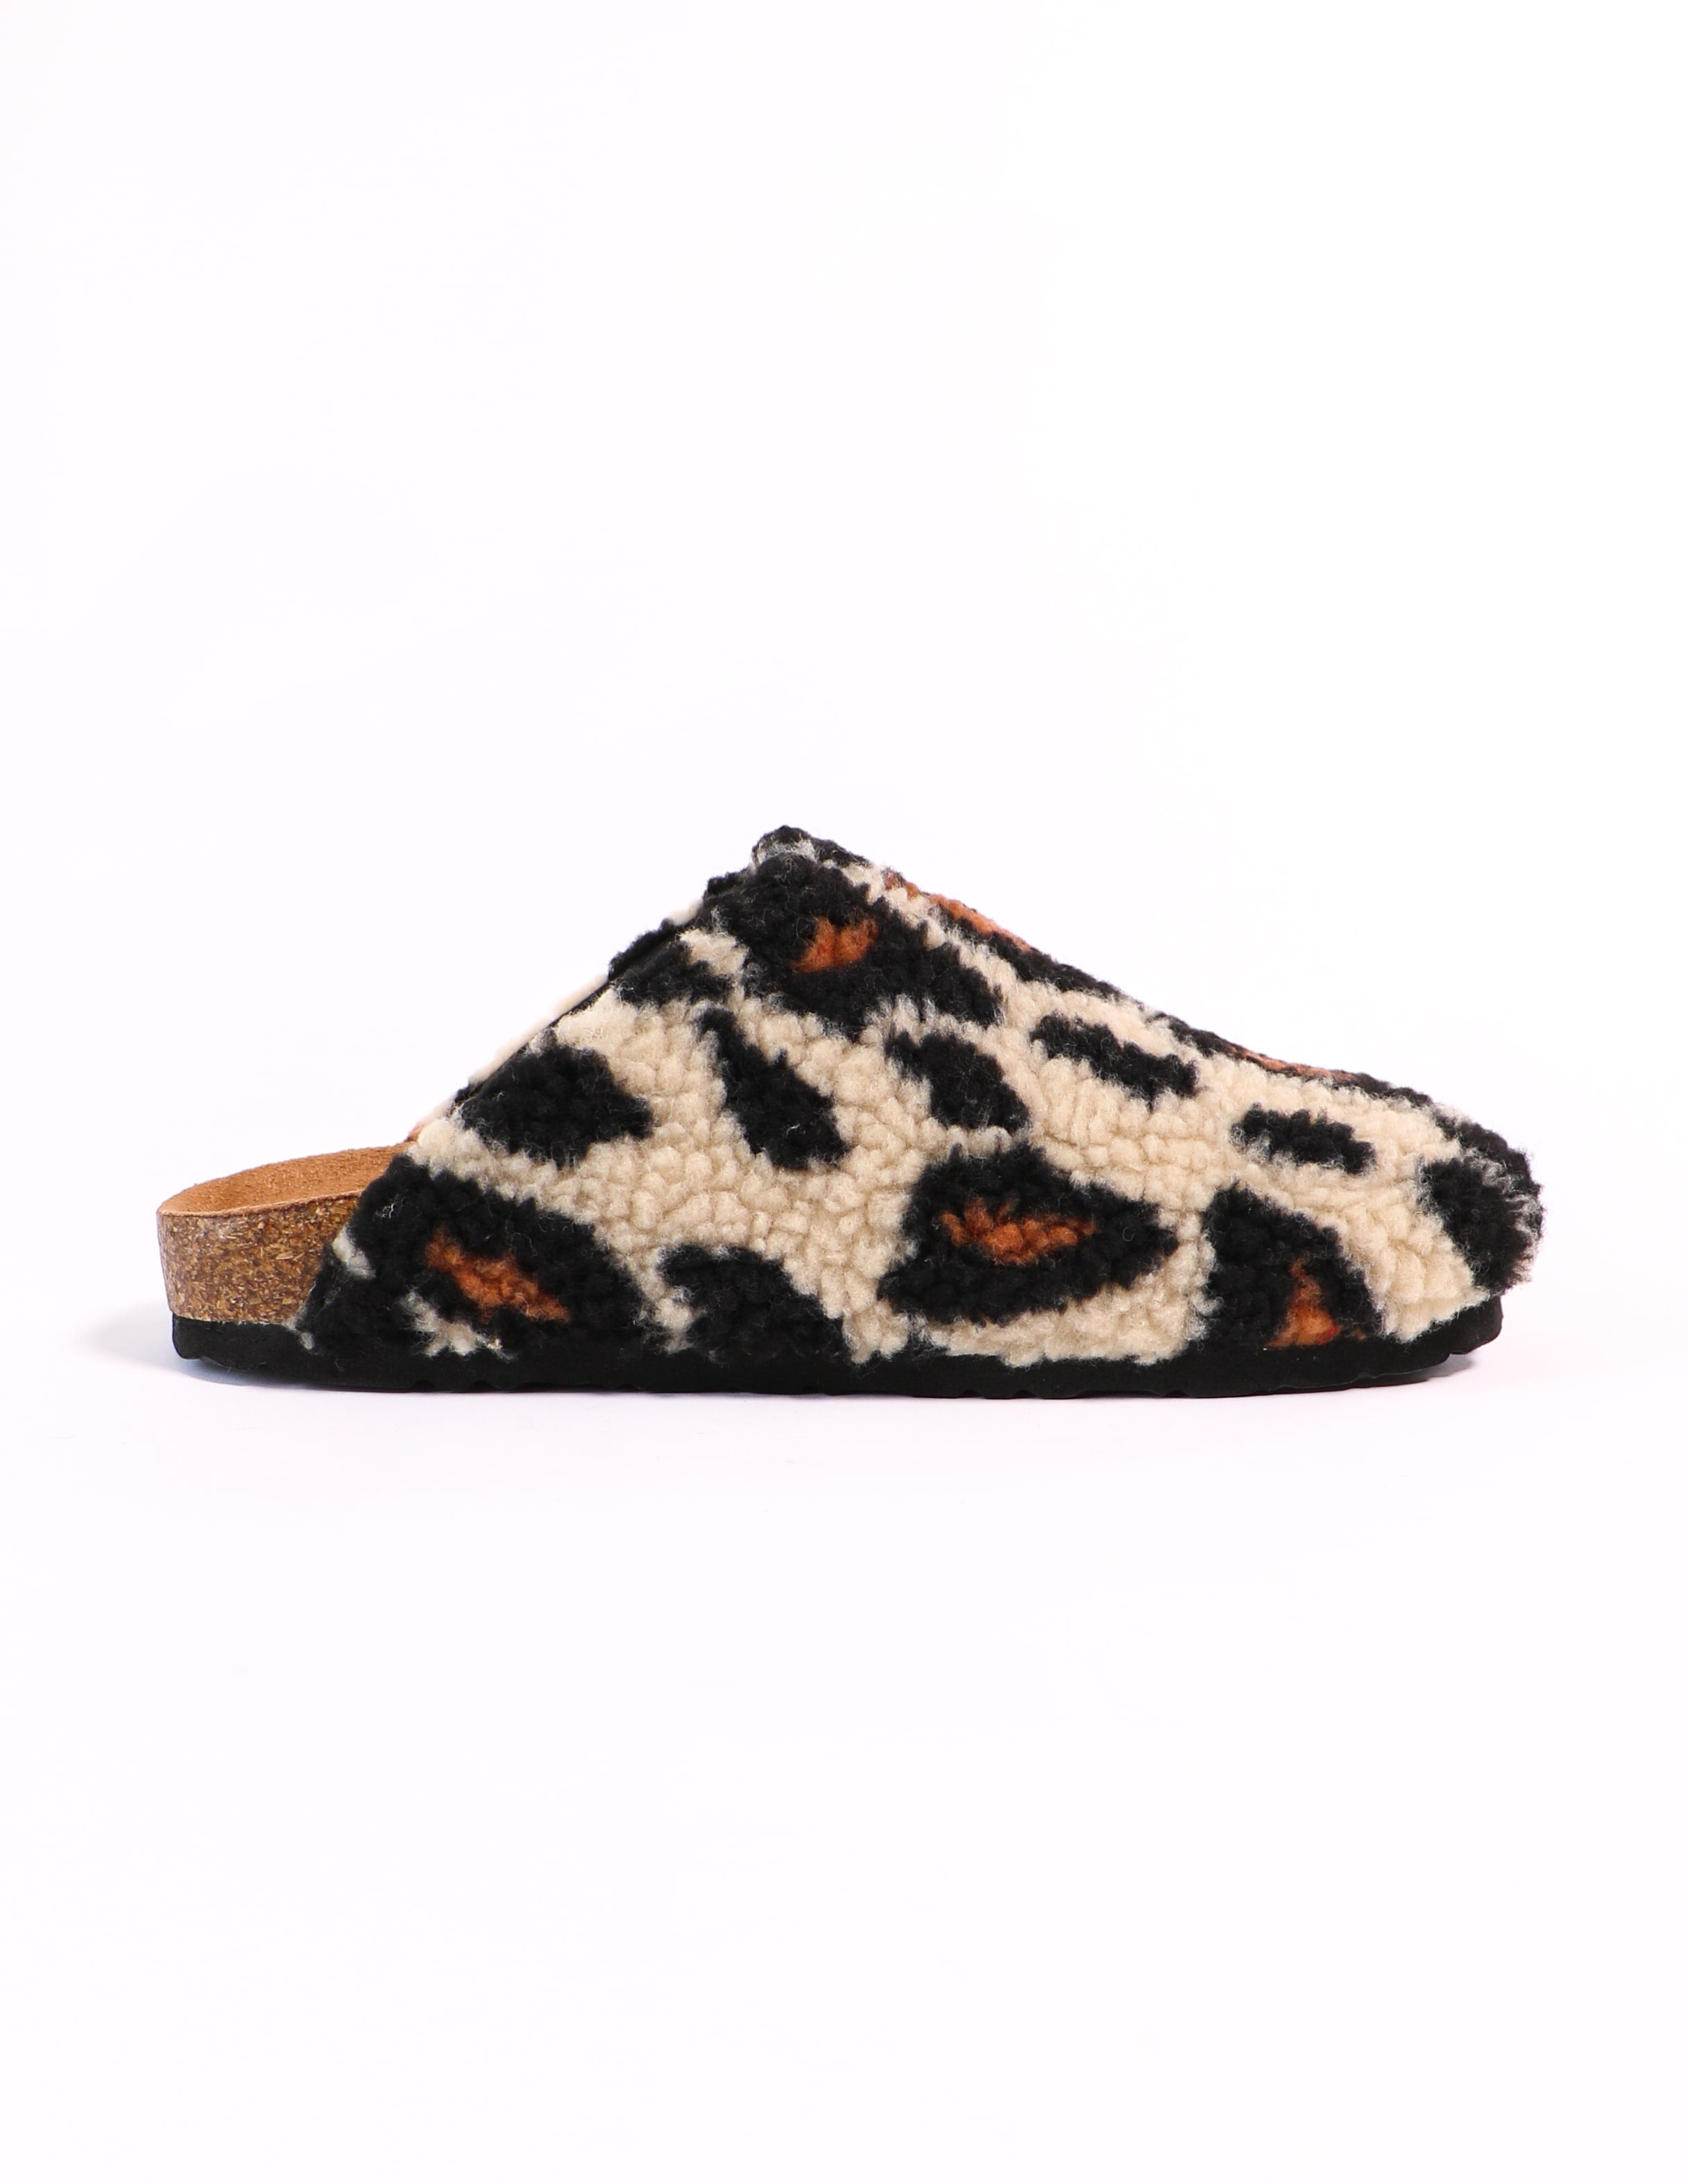 I'm teddy to go shearling slip on clog in leopard - elle bleu shoes